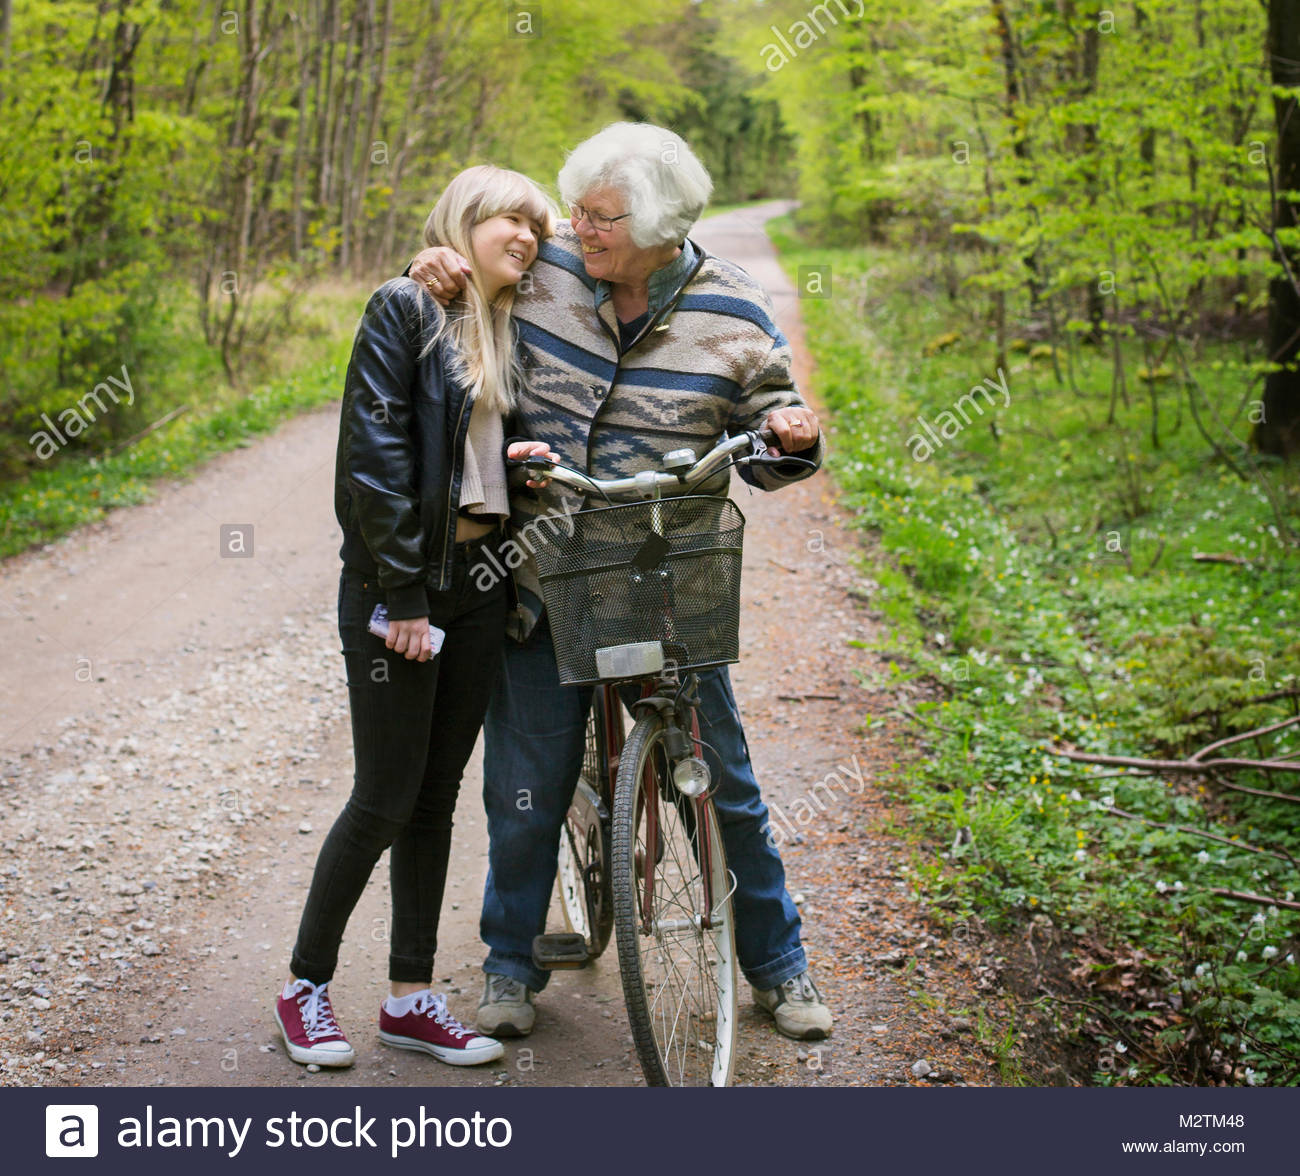 Grandmother and granddaughter embracing on forest road - Stock Image